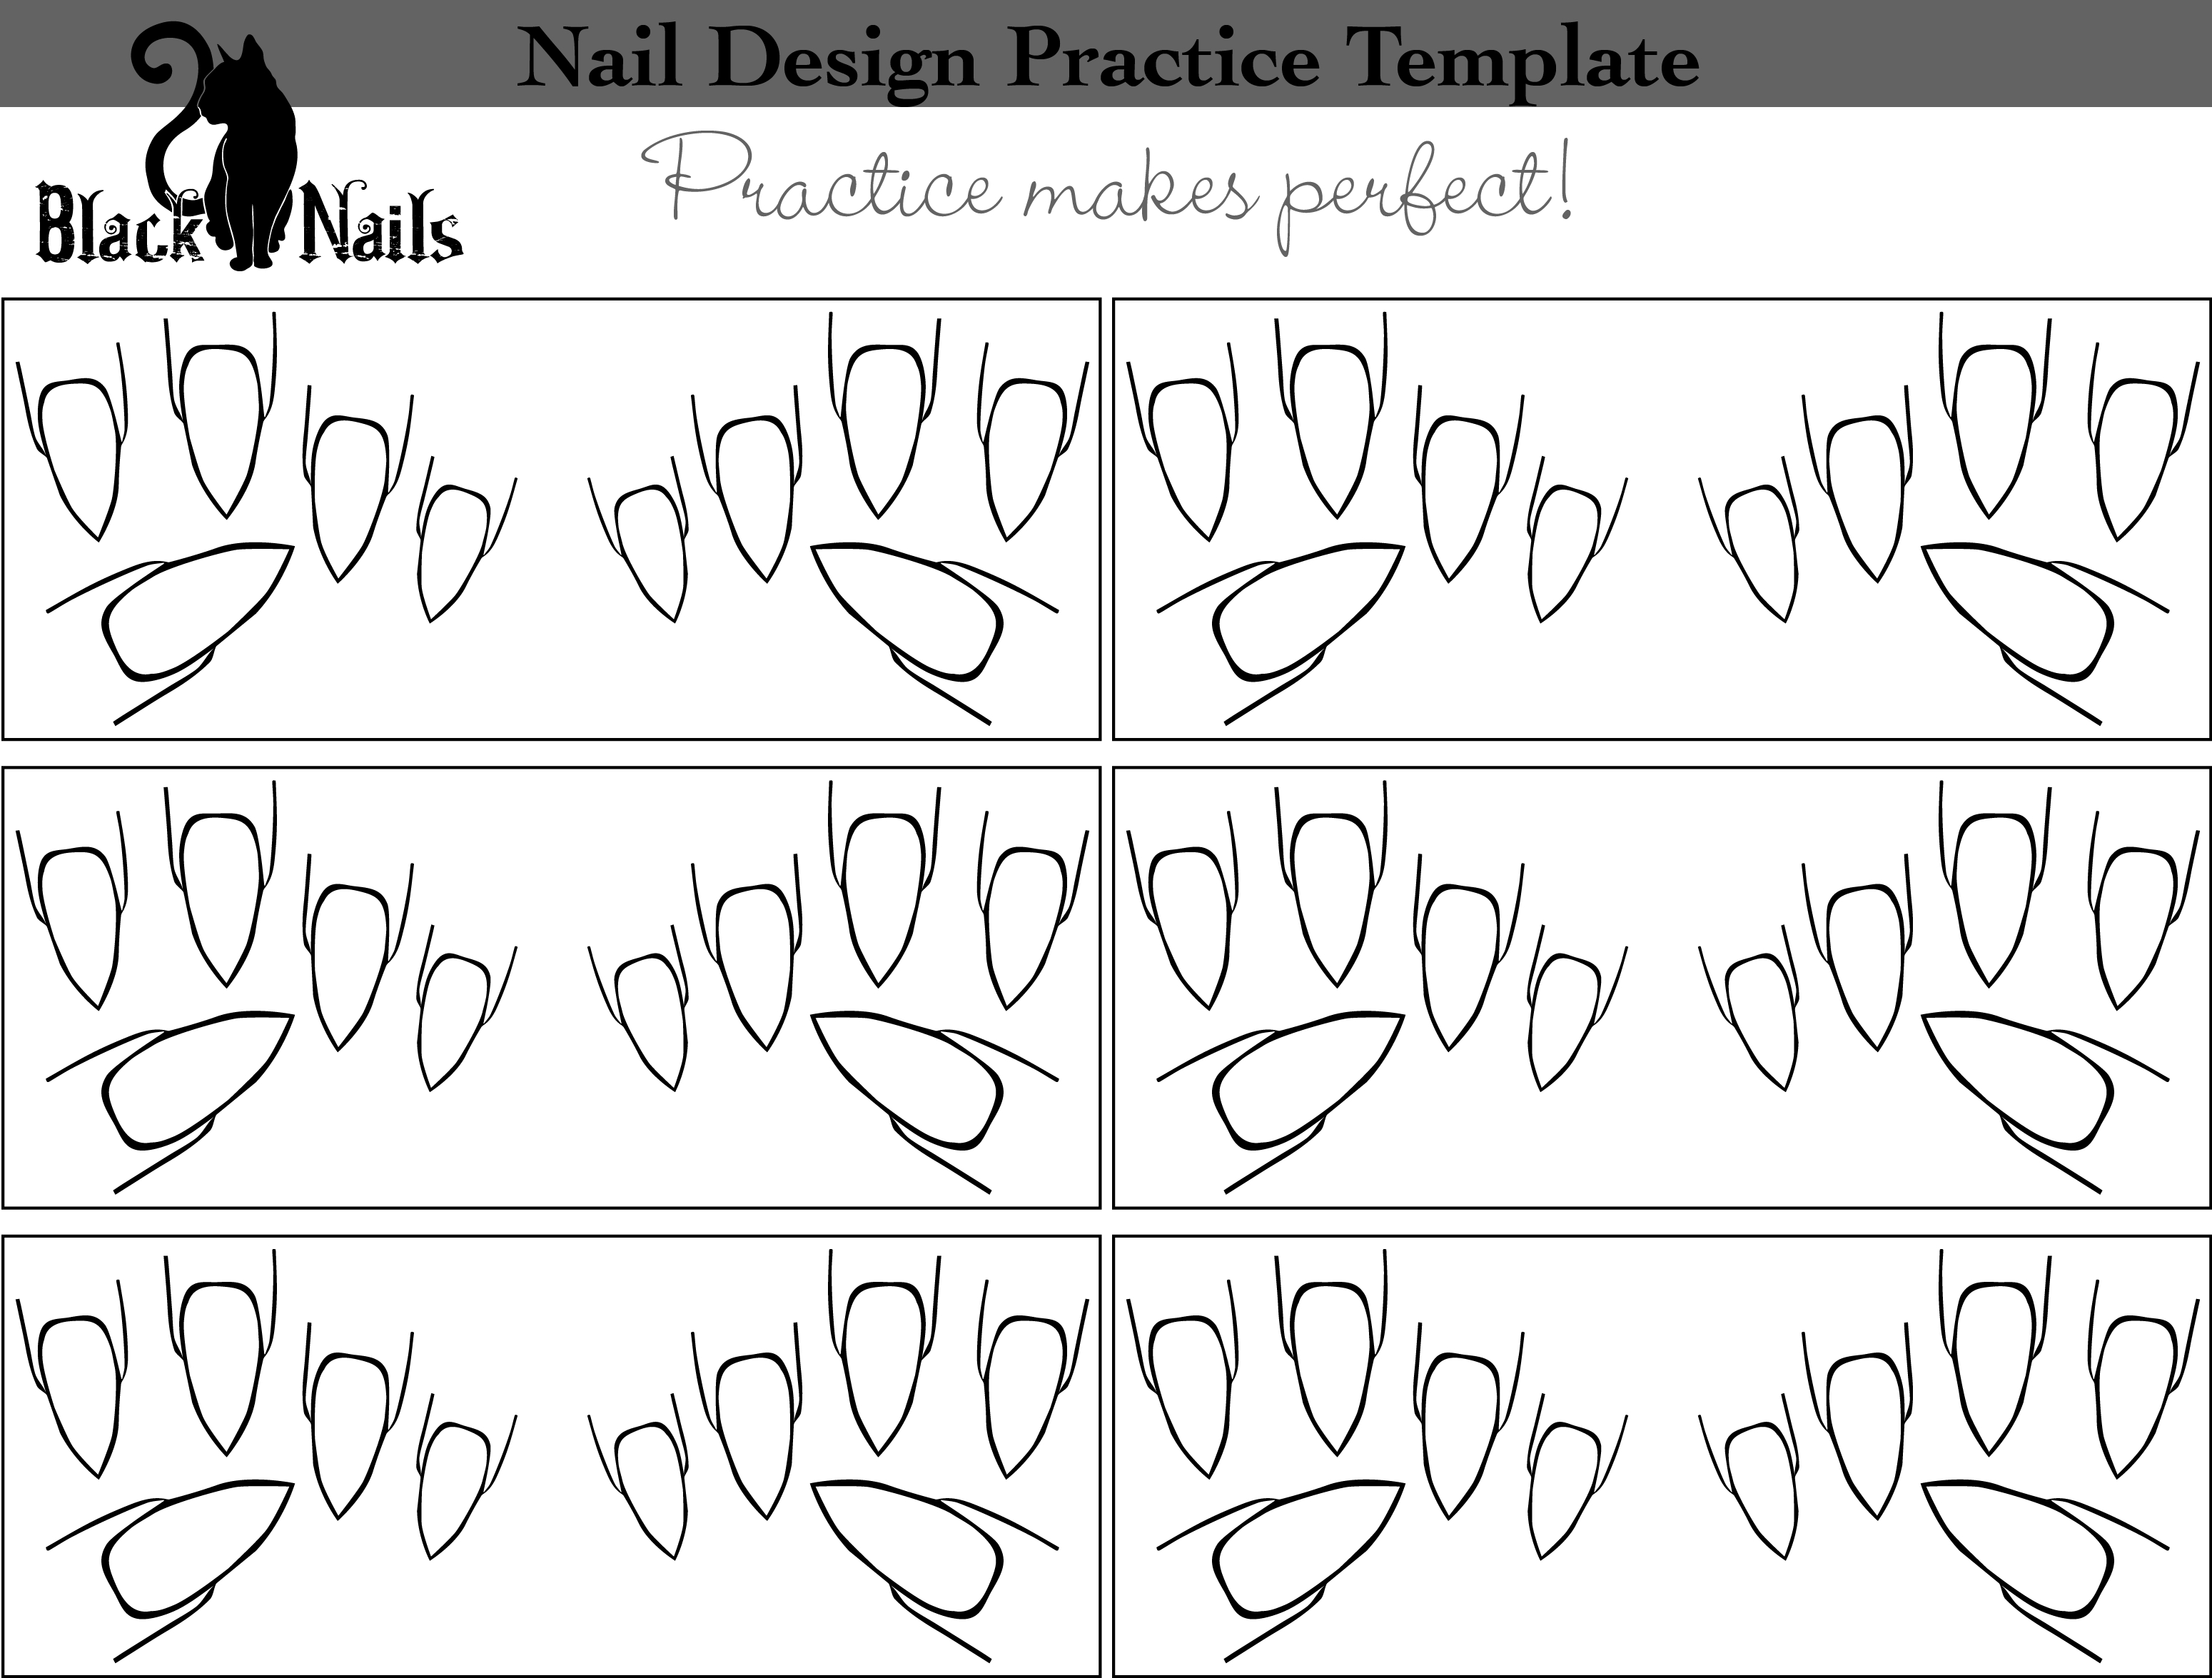 Nail Art Design Practice Templates Or Sheets - All Versions | Black - Free Printable Nail Art Designs